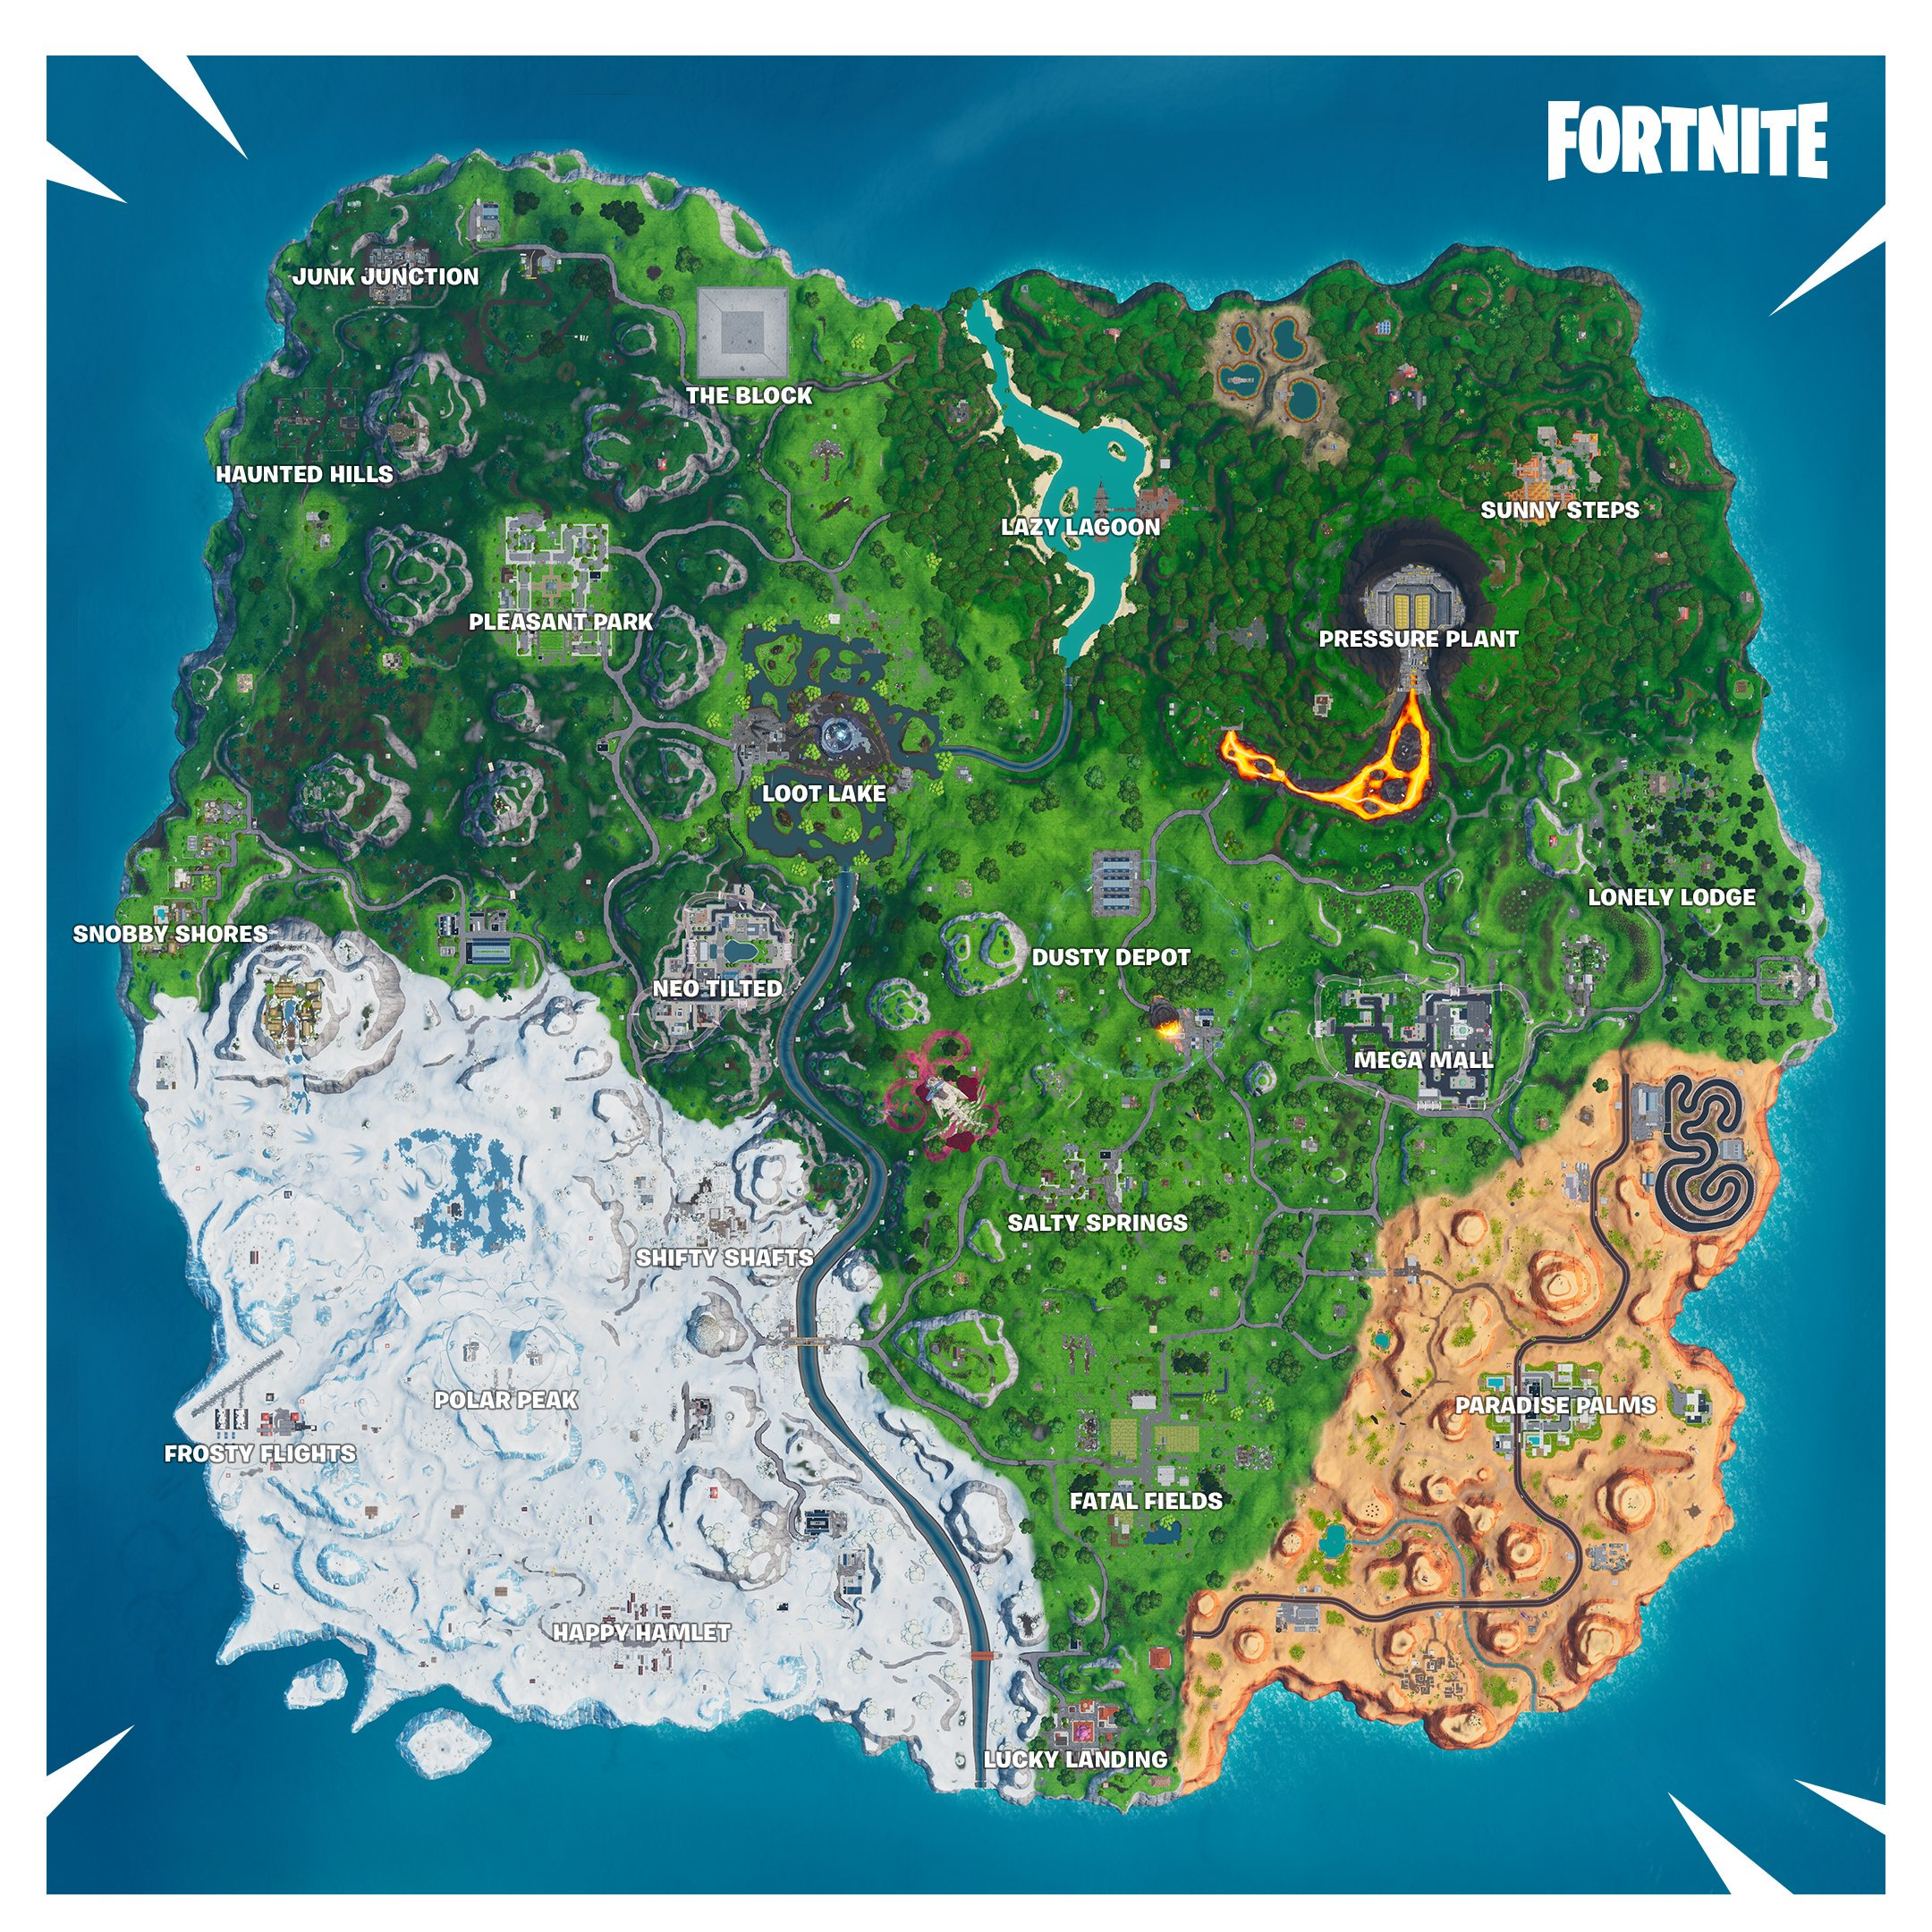 Fortnite: Season 10 guide - Release date, map changes ...